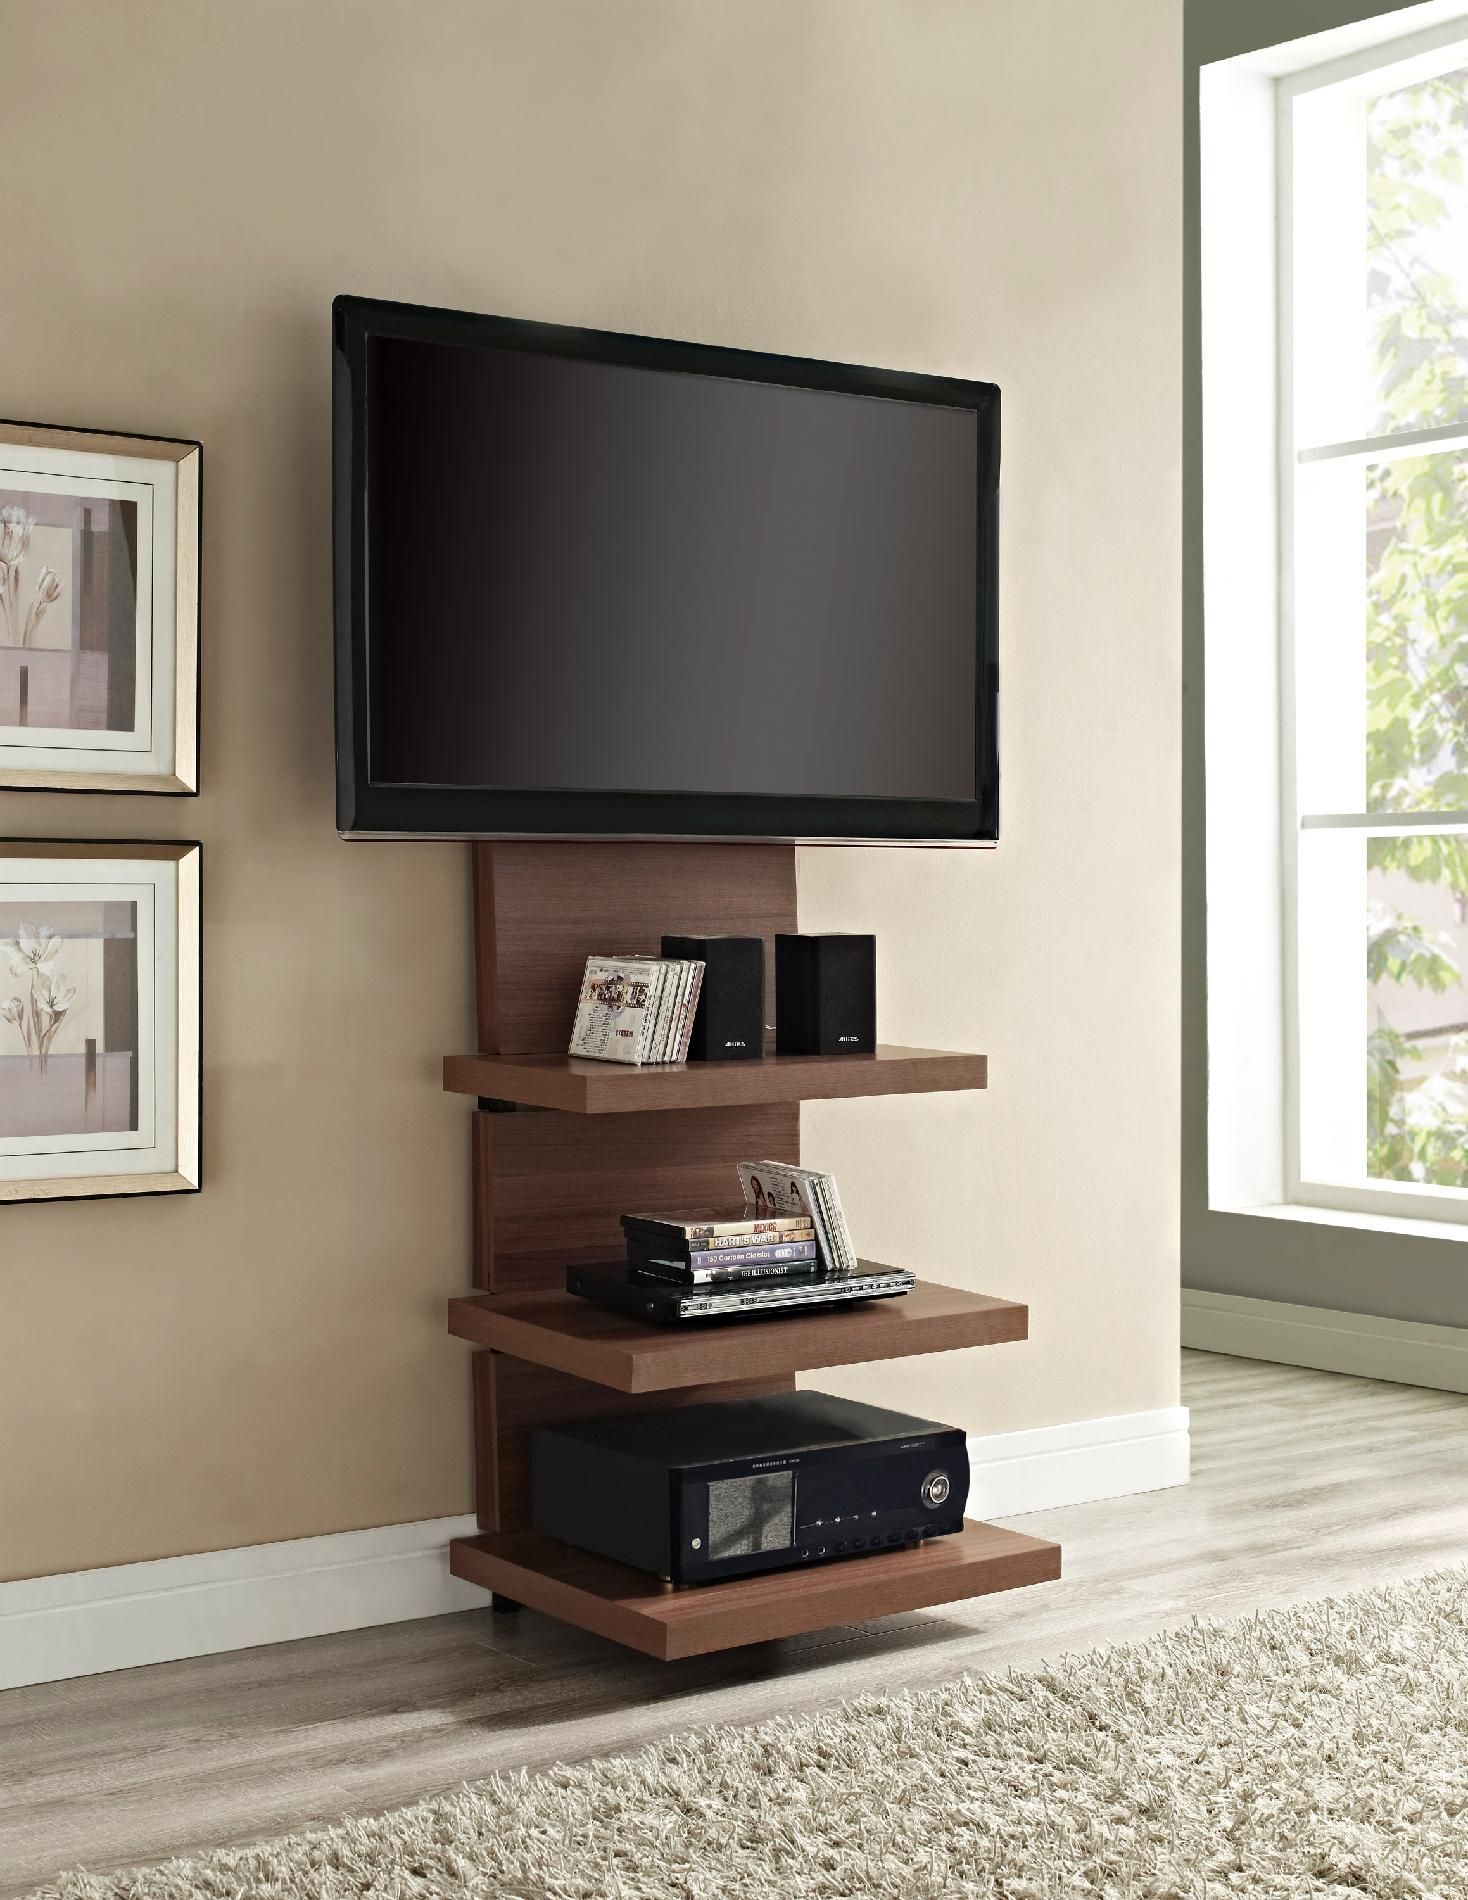 small resolution of 18 chic and modern tv wall mount ideas for living room dream home rh pinterest com home entertainment wiring home entertainment wiring ideas